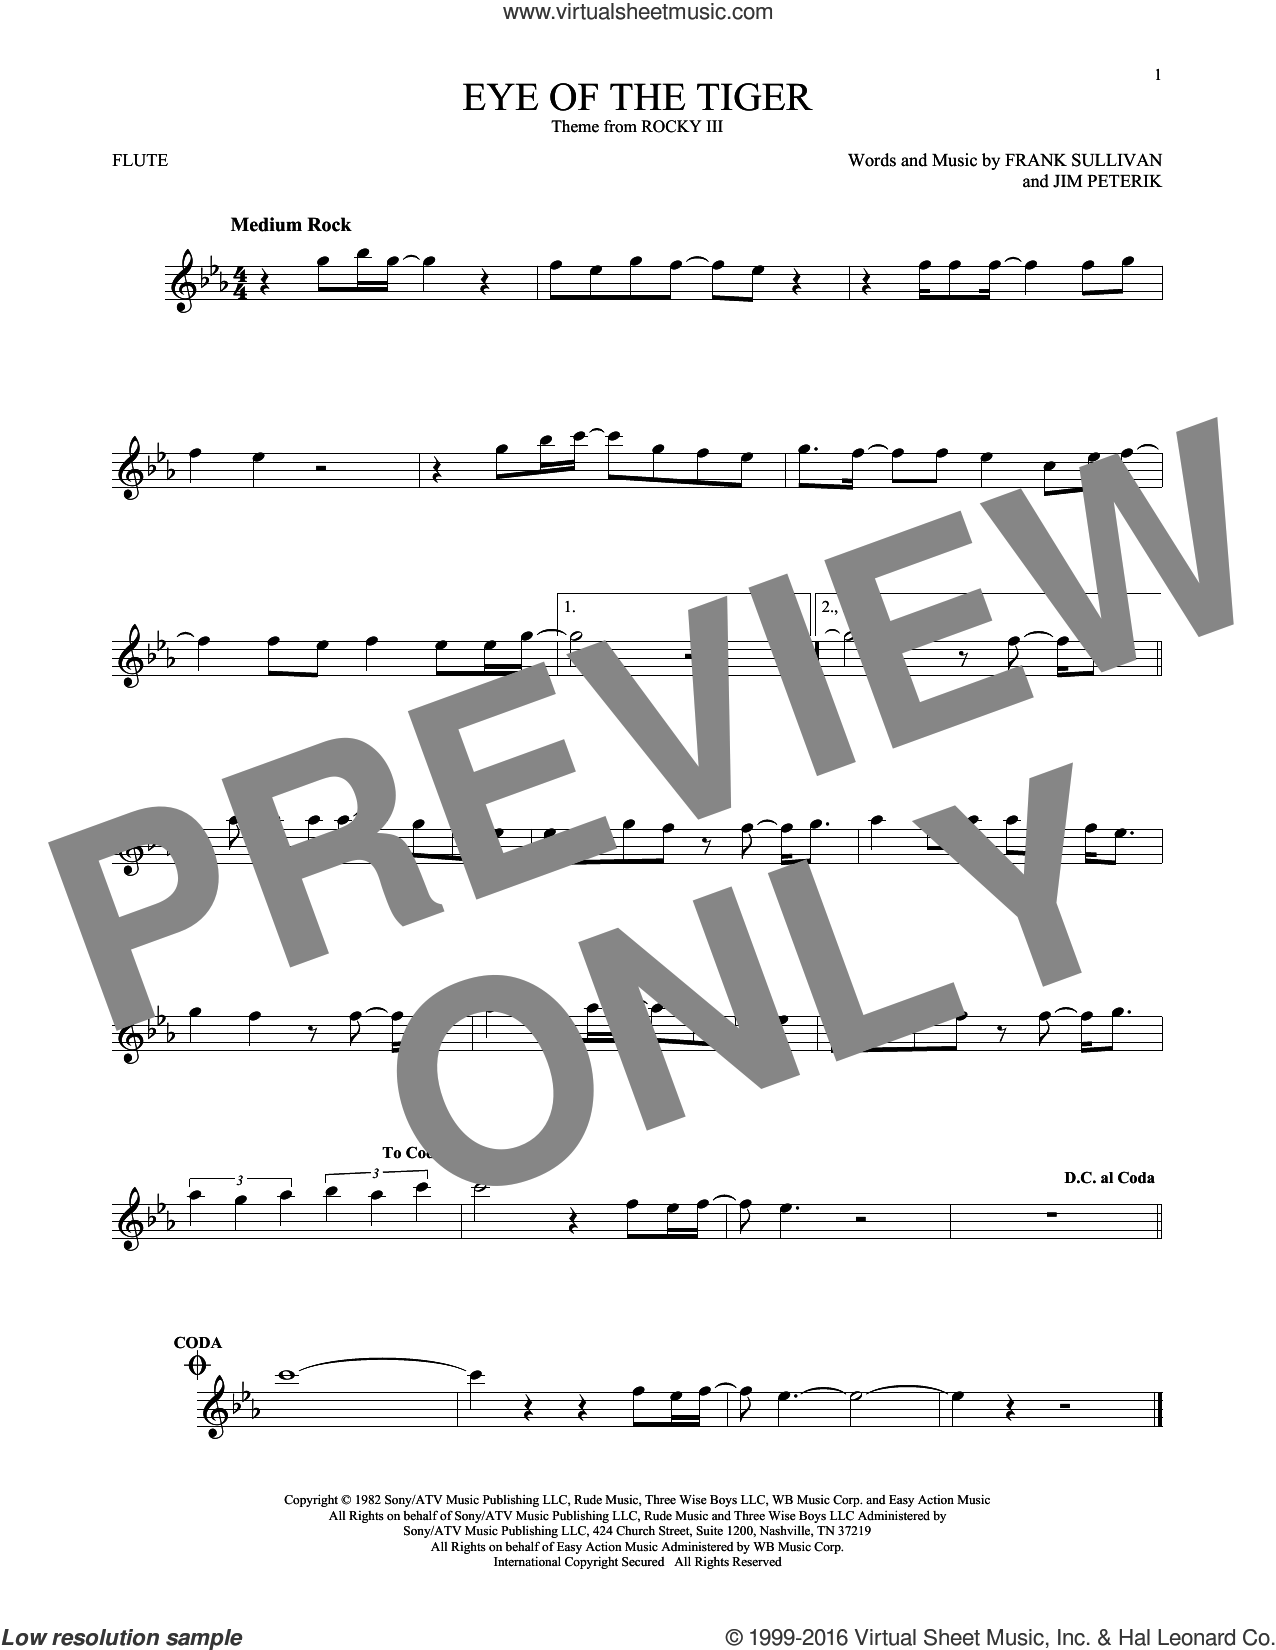 Eye Of The Tiger sheet music for flute solo by Jim Peterik, Survivor and Frank Sullivan. Score Image Preview.